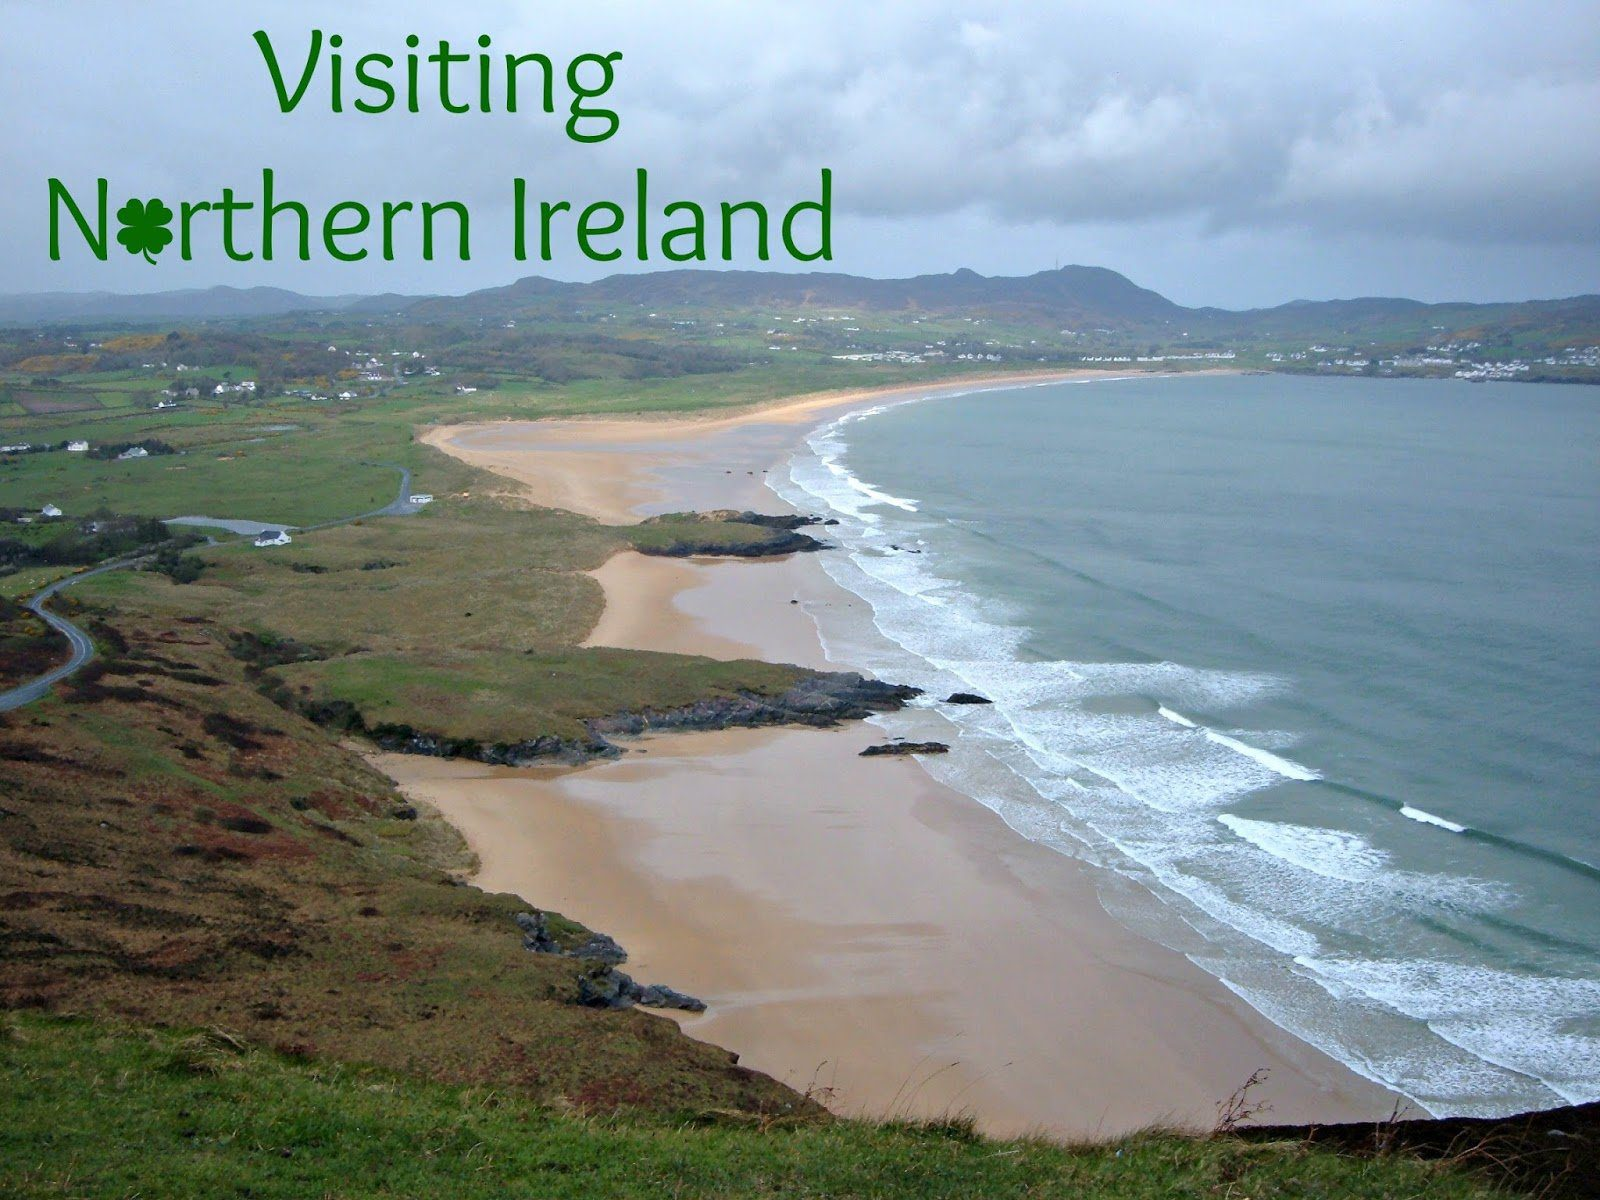 Visiting Northern Ireland